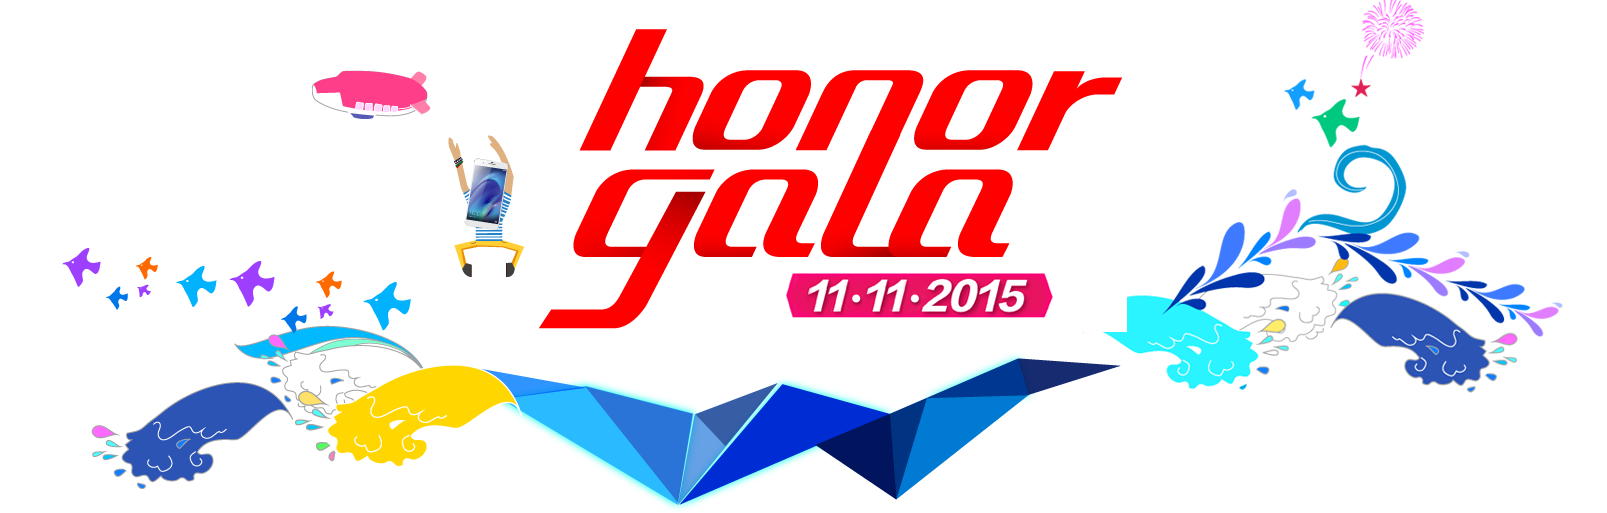 honor Gala 2015 on 11.11 generates MYR12million in sales